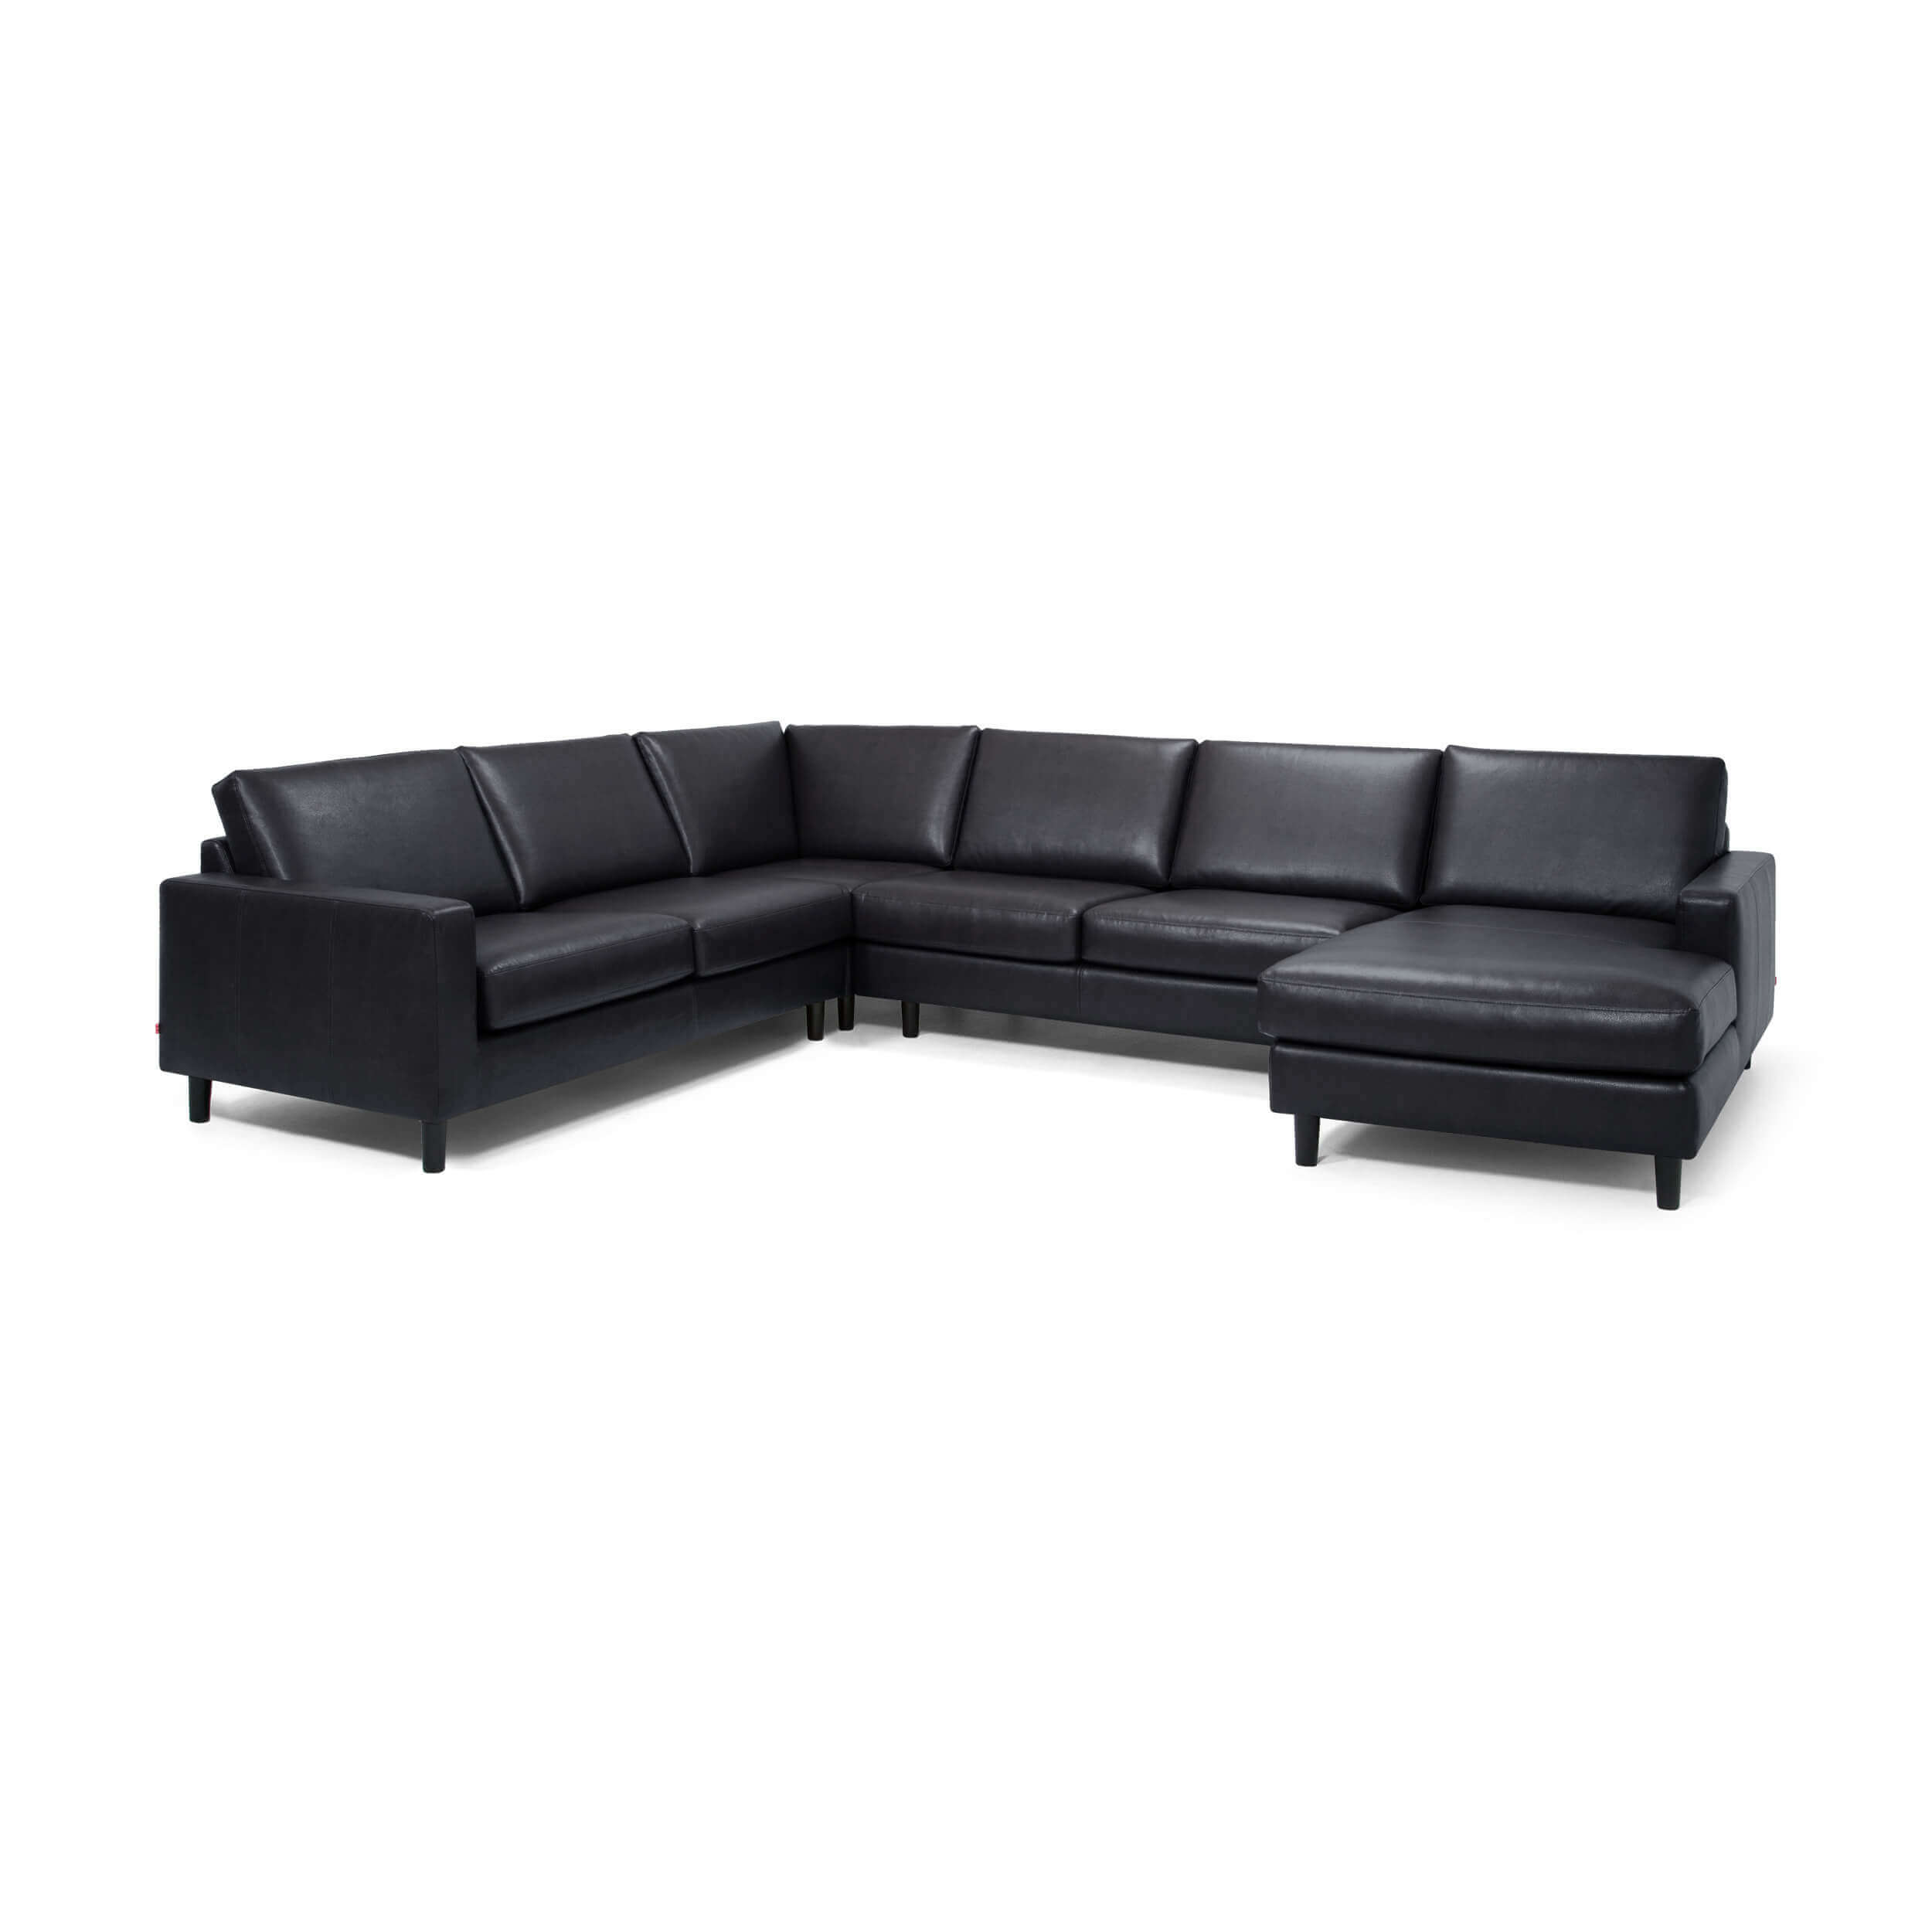 Modern Sectional Sofas Living Room Seating Eq3